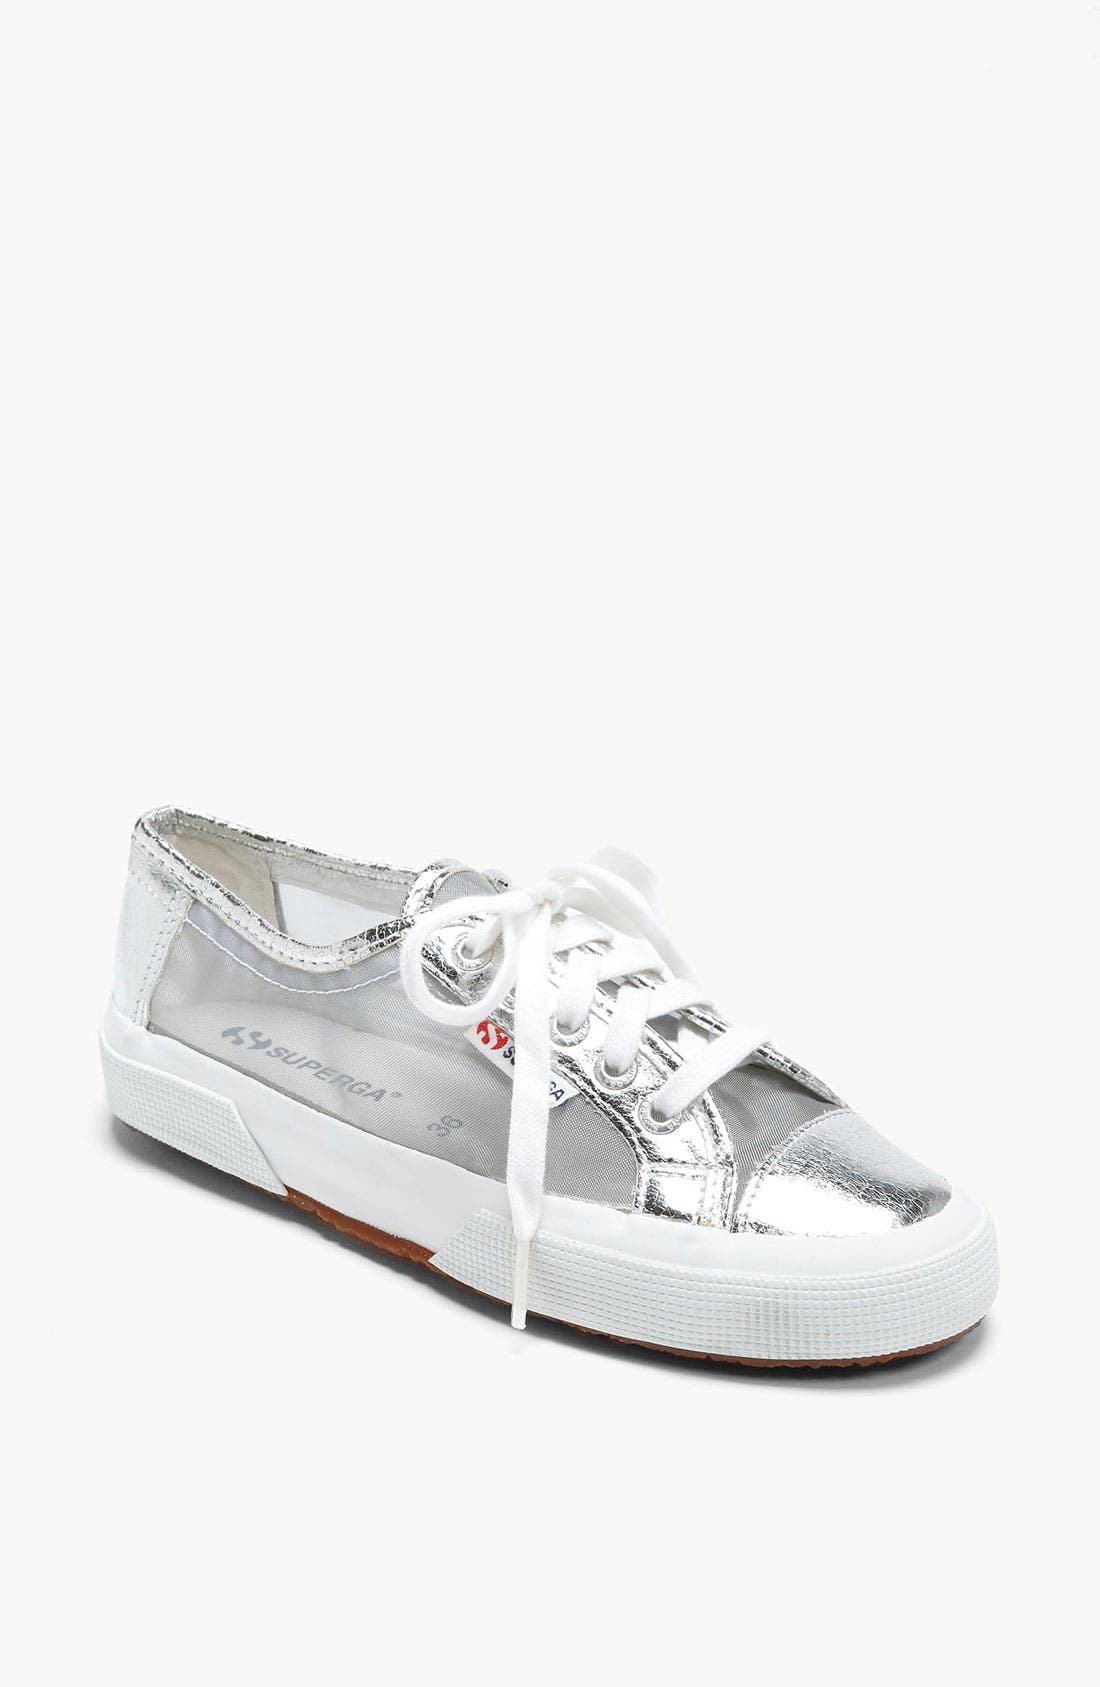 Main Image - Superga 'Netu' Sneaker (Women)